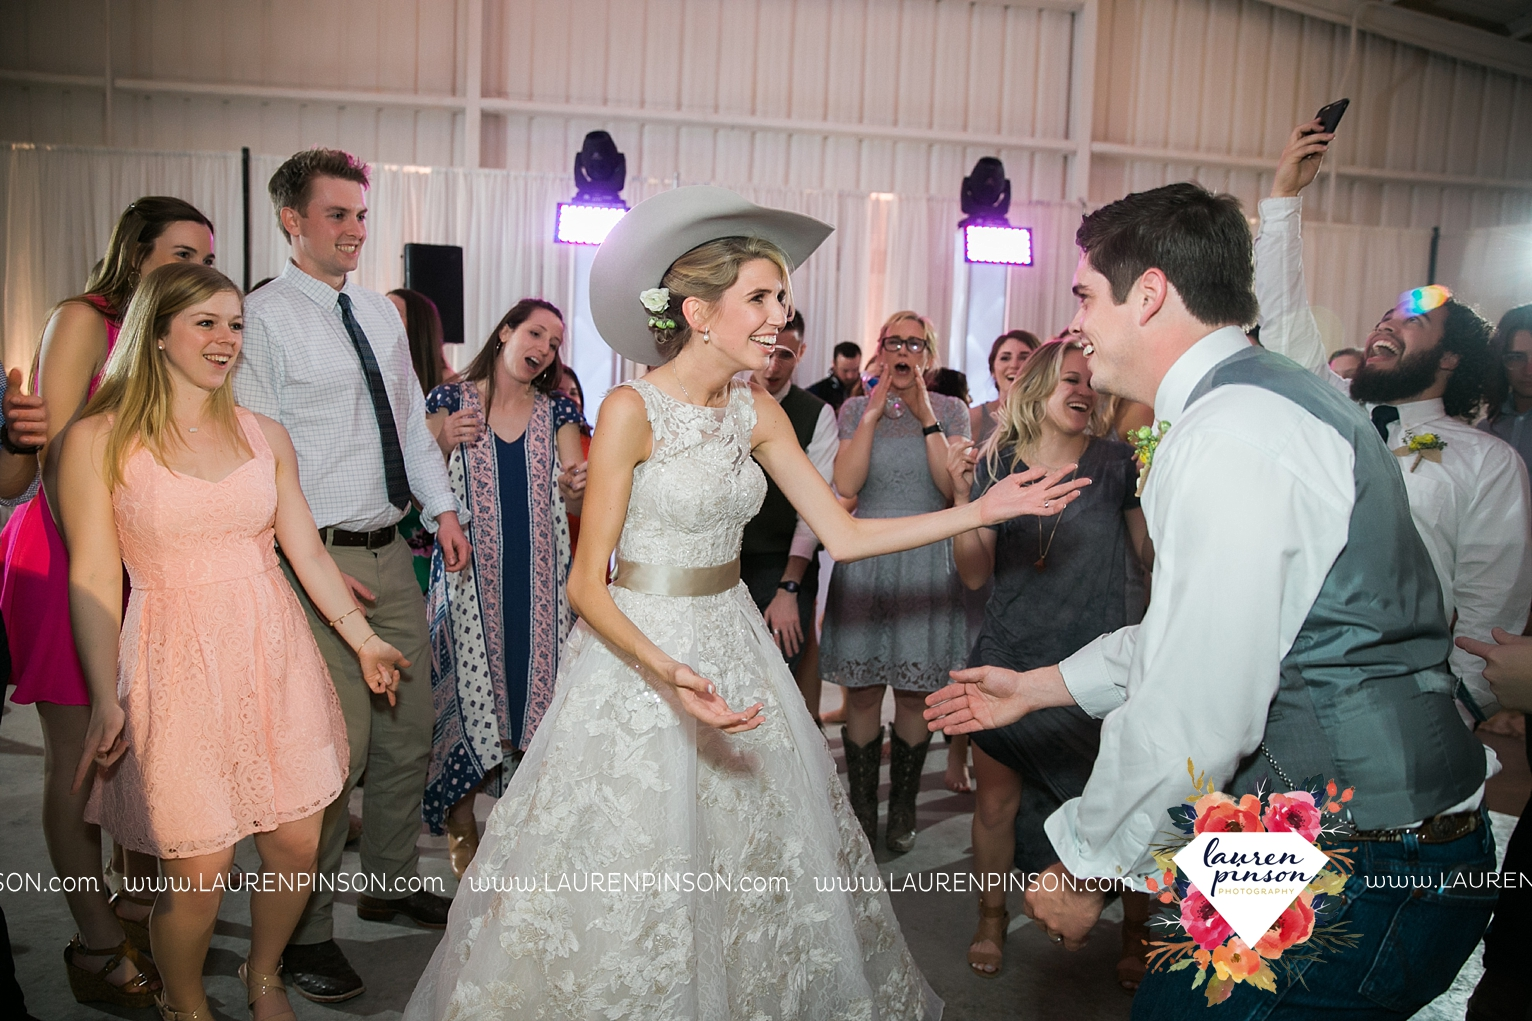 wichita-falls-texas-wedding-photographer-bowie-nocona-henrietta-country-barn-wedding_2213.jpg